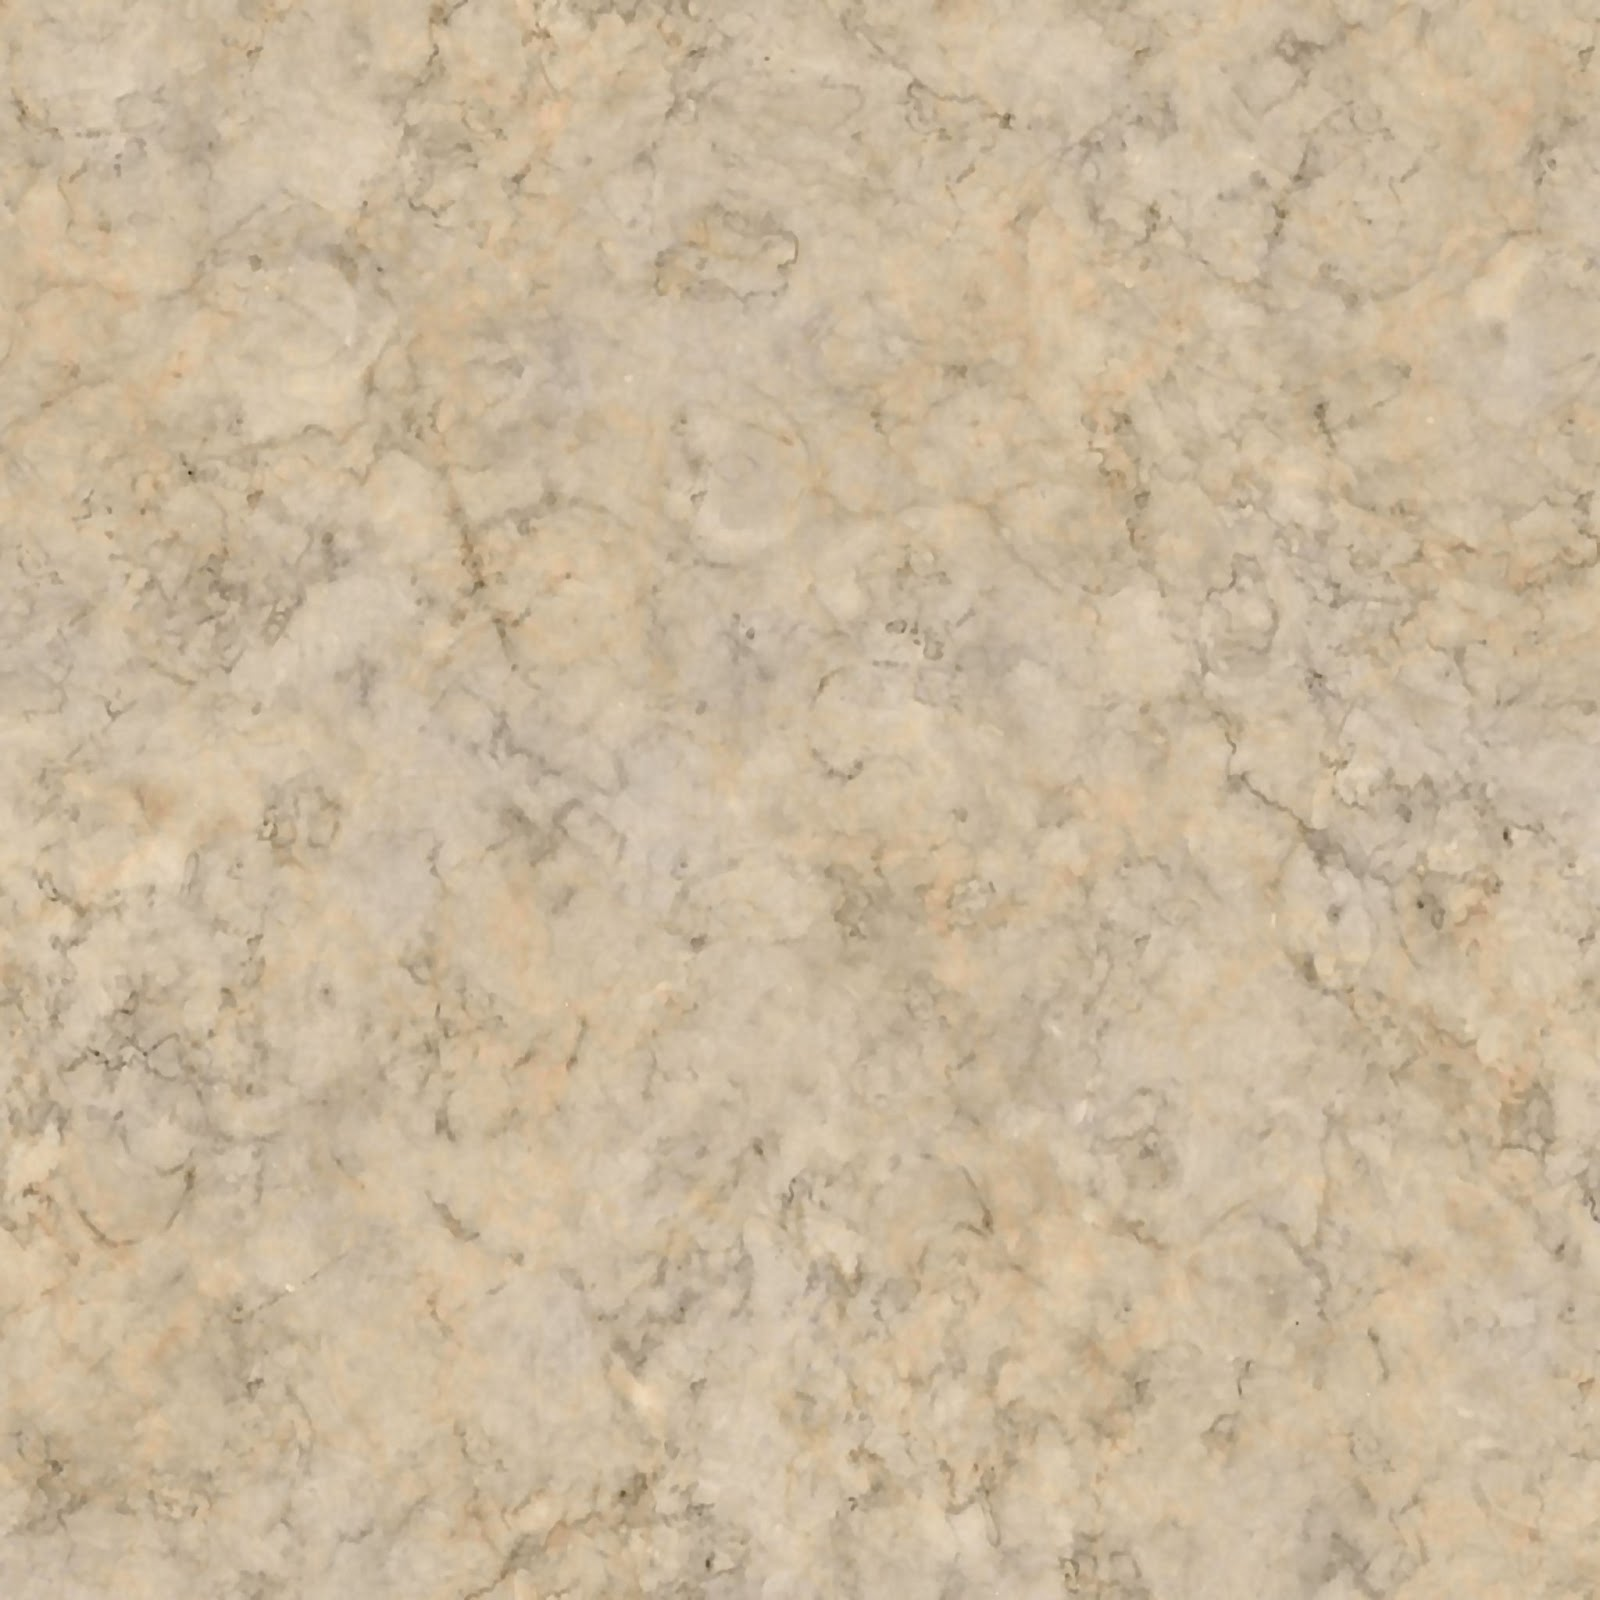 High Resolution Textures Free Seamless Marble Textures